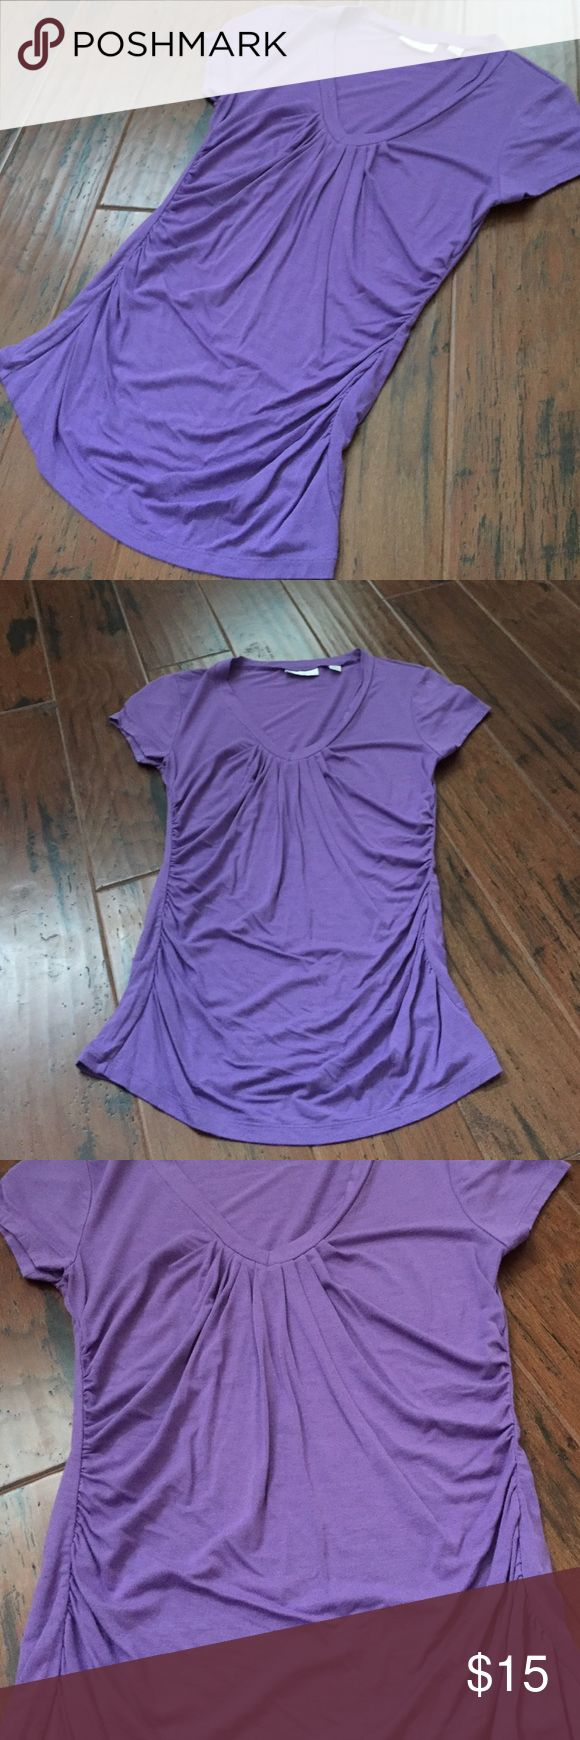 Purple tee Very cute never worn purple too from New York & Co.  Has some ruching details New York & Company Tops Tees - Short Sleeve